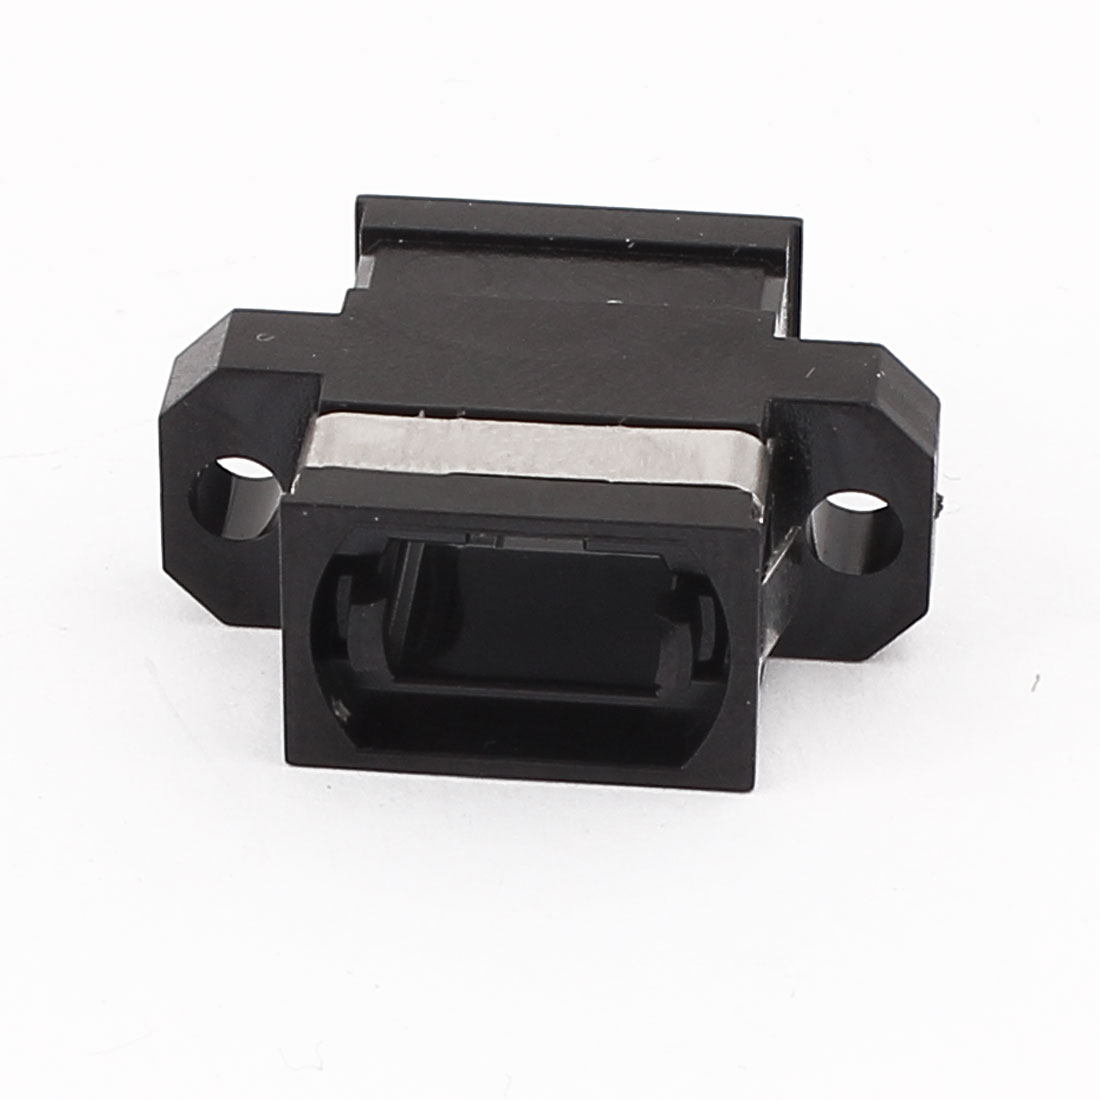 Fibre MPO/MTP SM Adapter Optical Fiber Coupler Connector